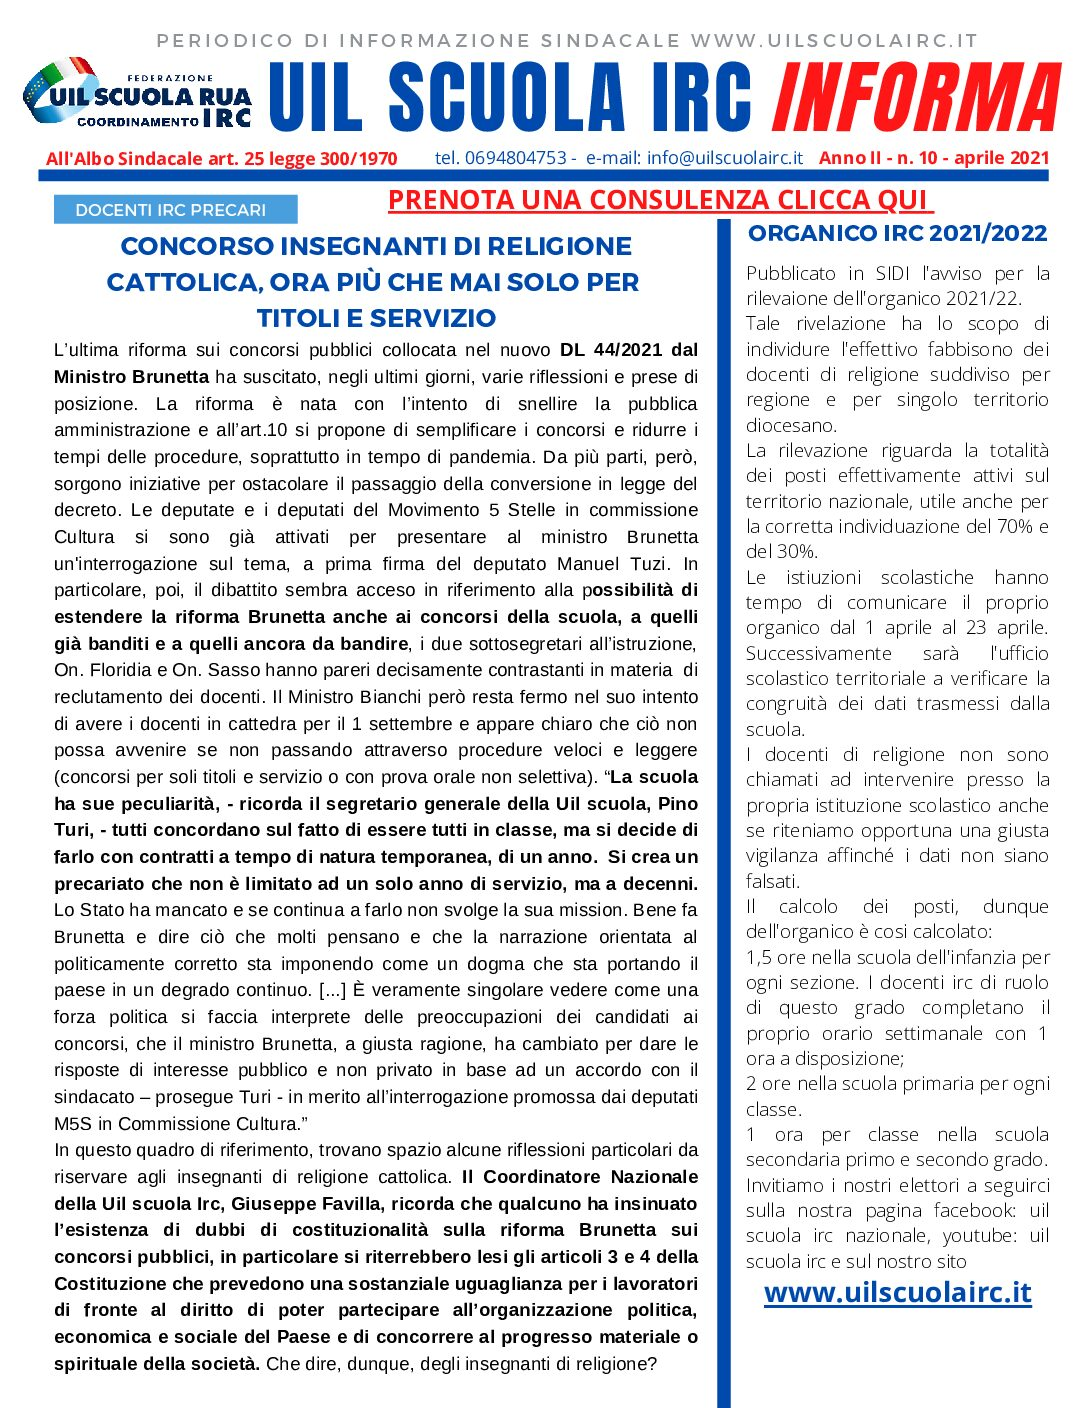 UIL SCUOLA IRC INFORMA N.10